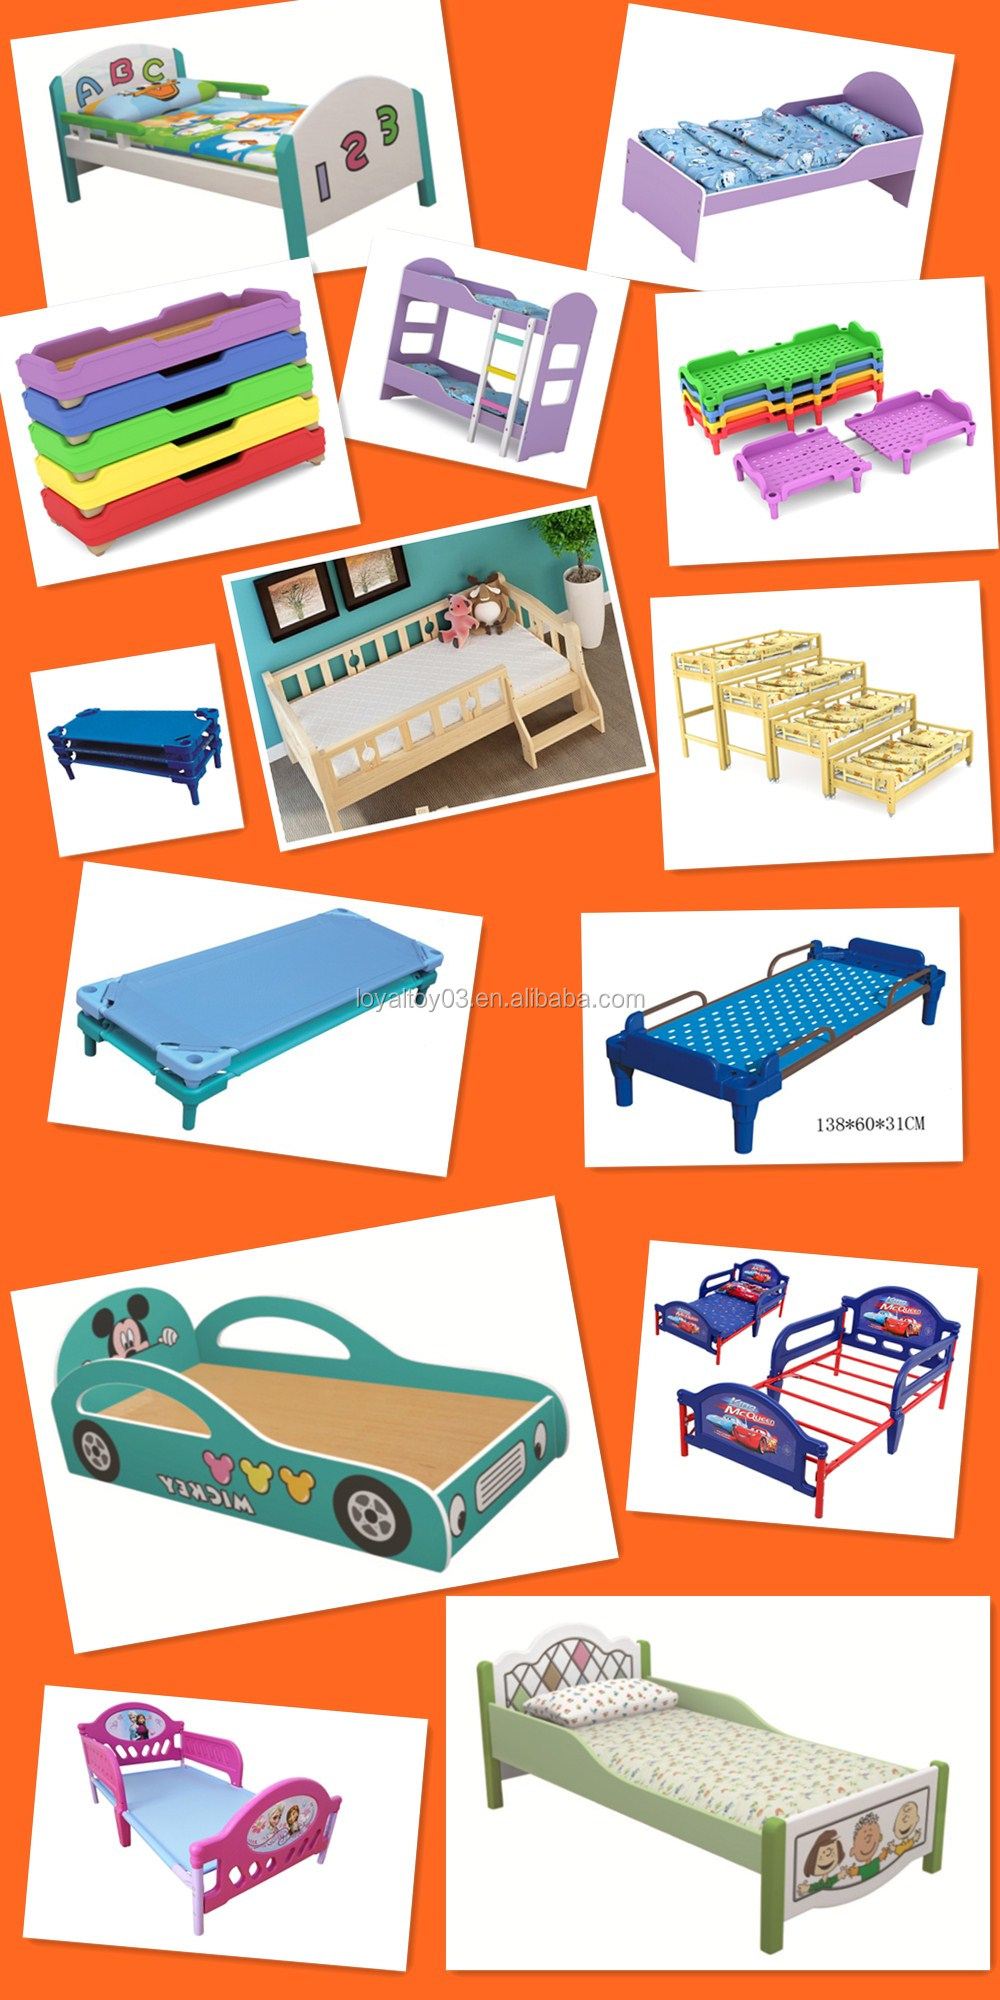 2016 NEW STYLE NURSERY BED,DAYCARE FURNITURE,CHILDREN COT,stackable in affordable cost